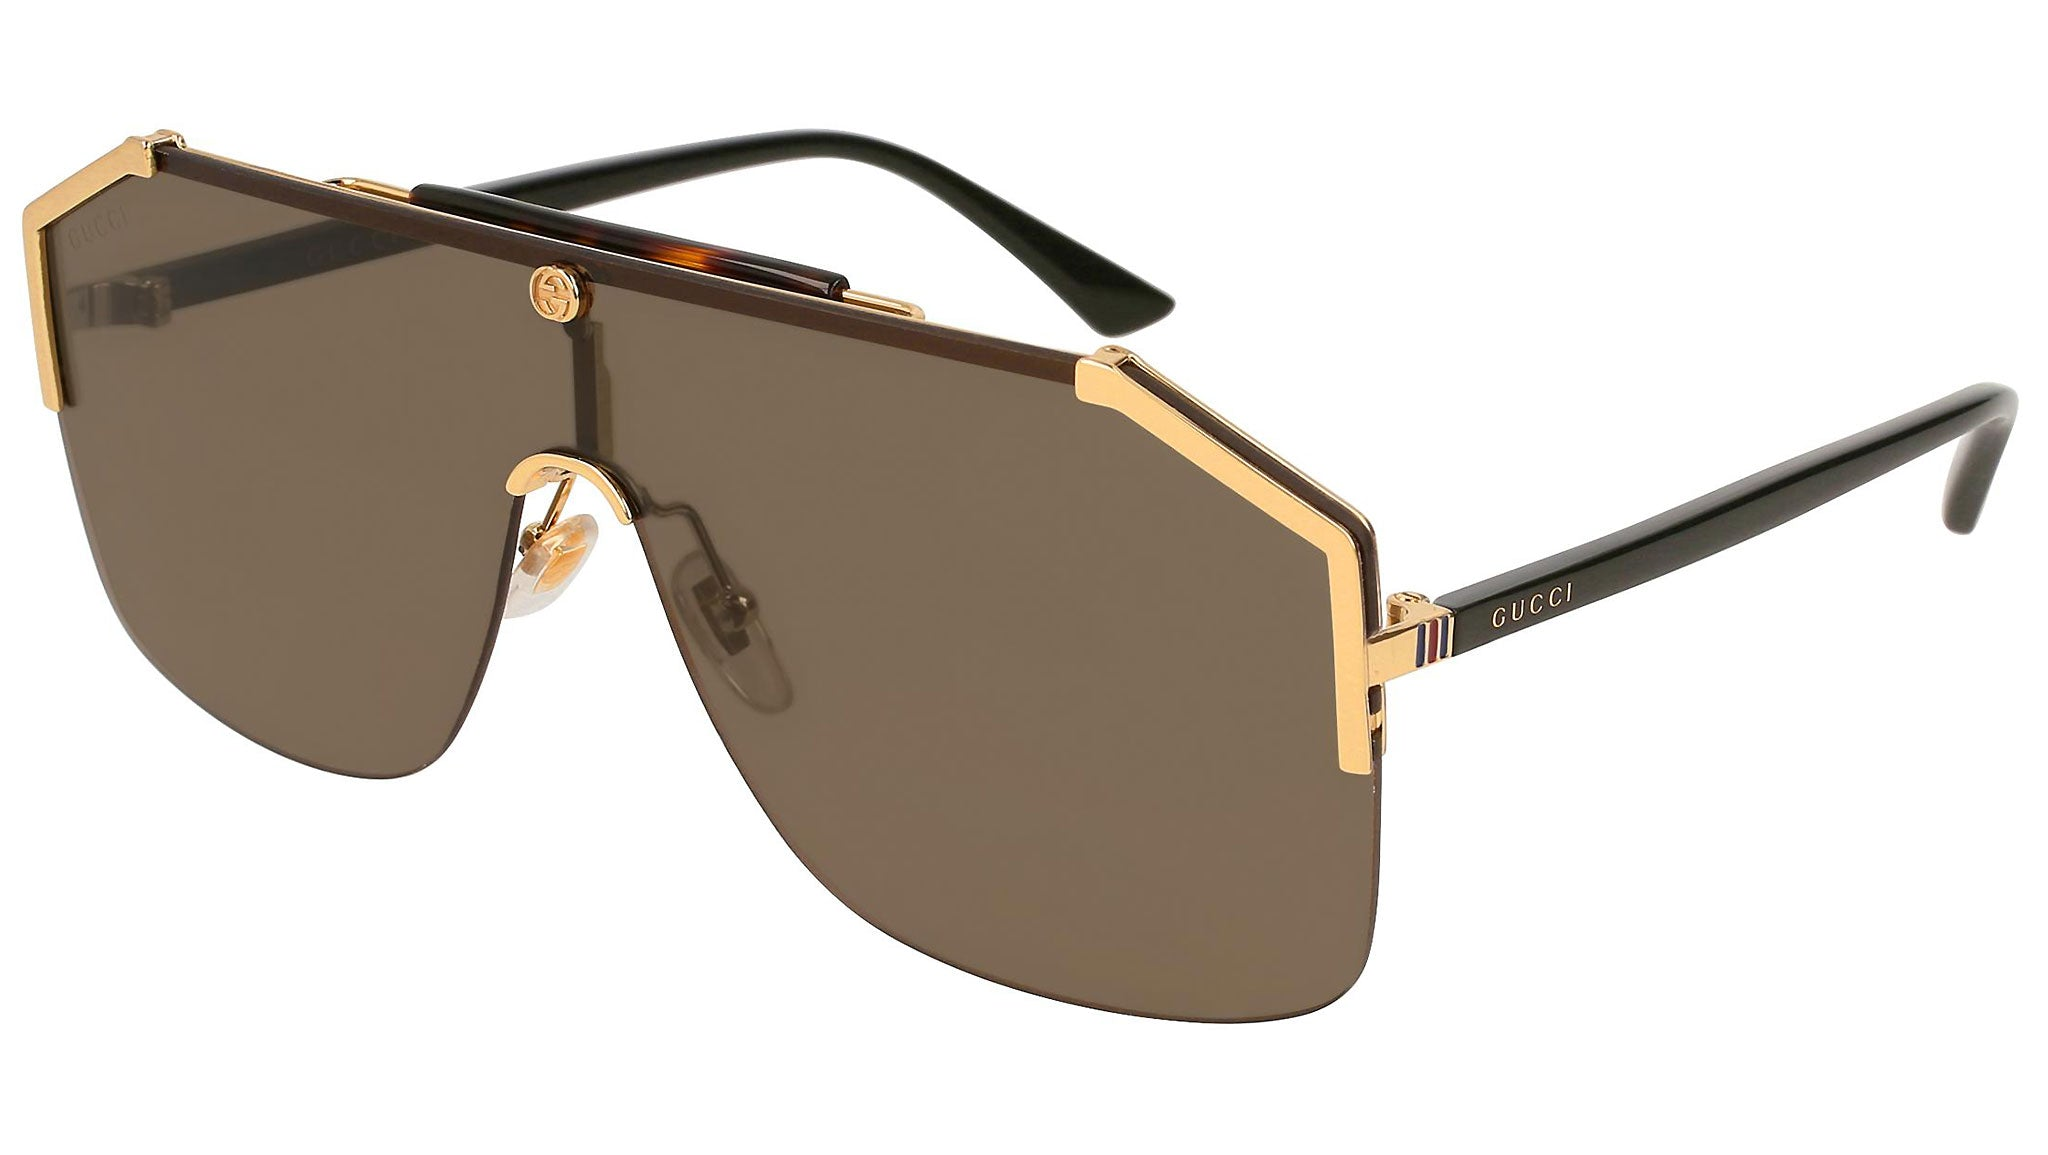 GG0291S havana gold and brown